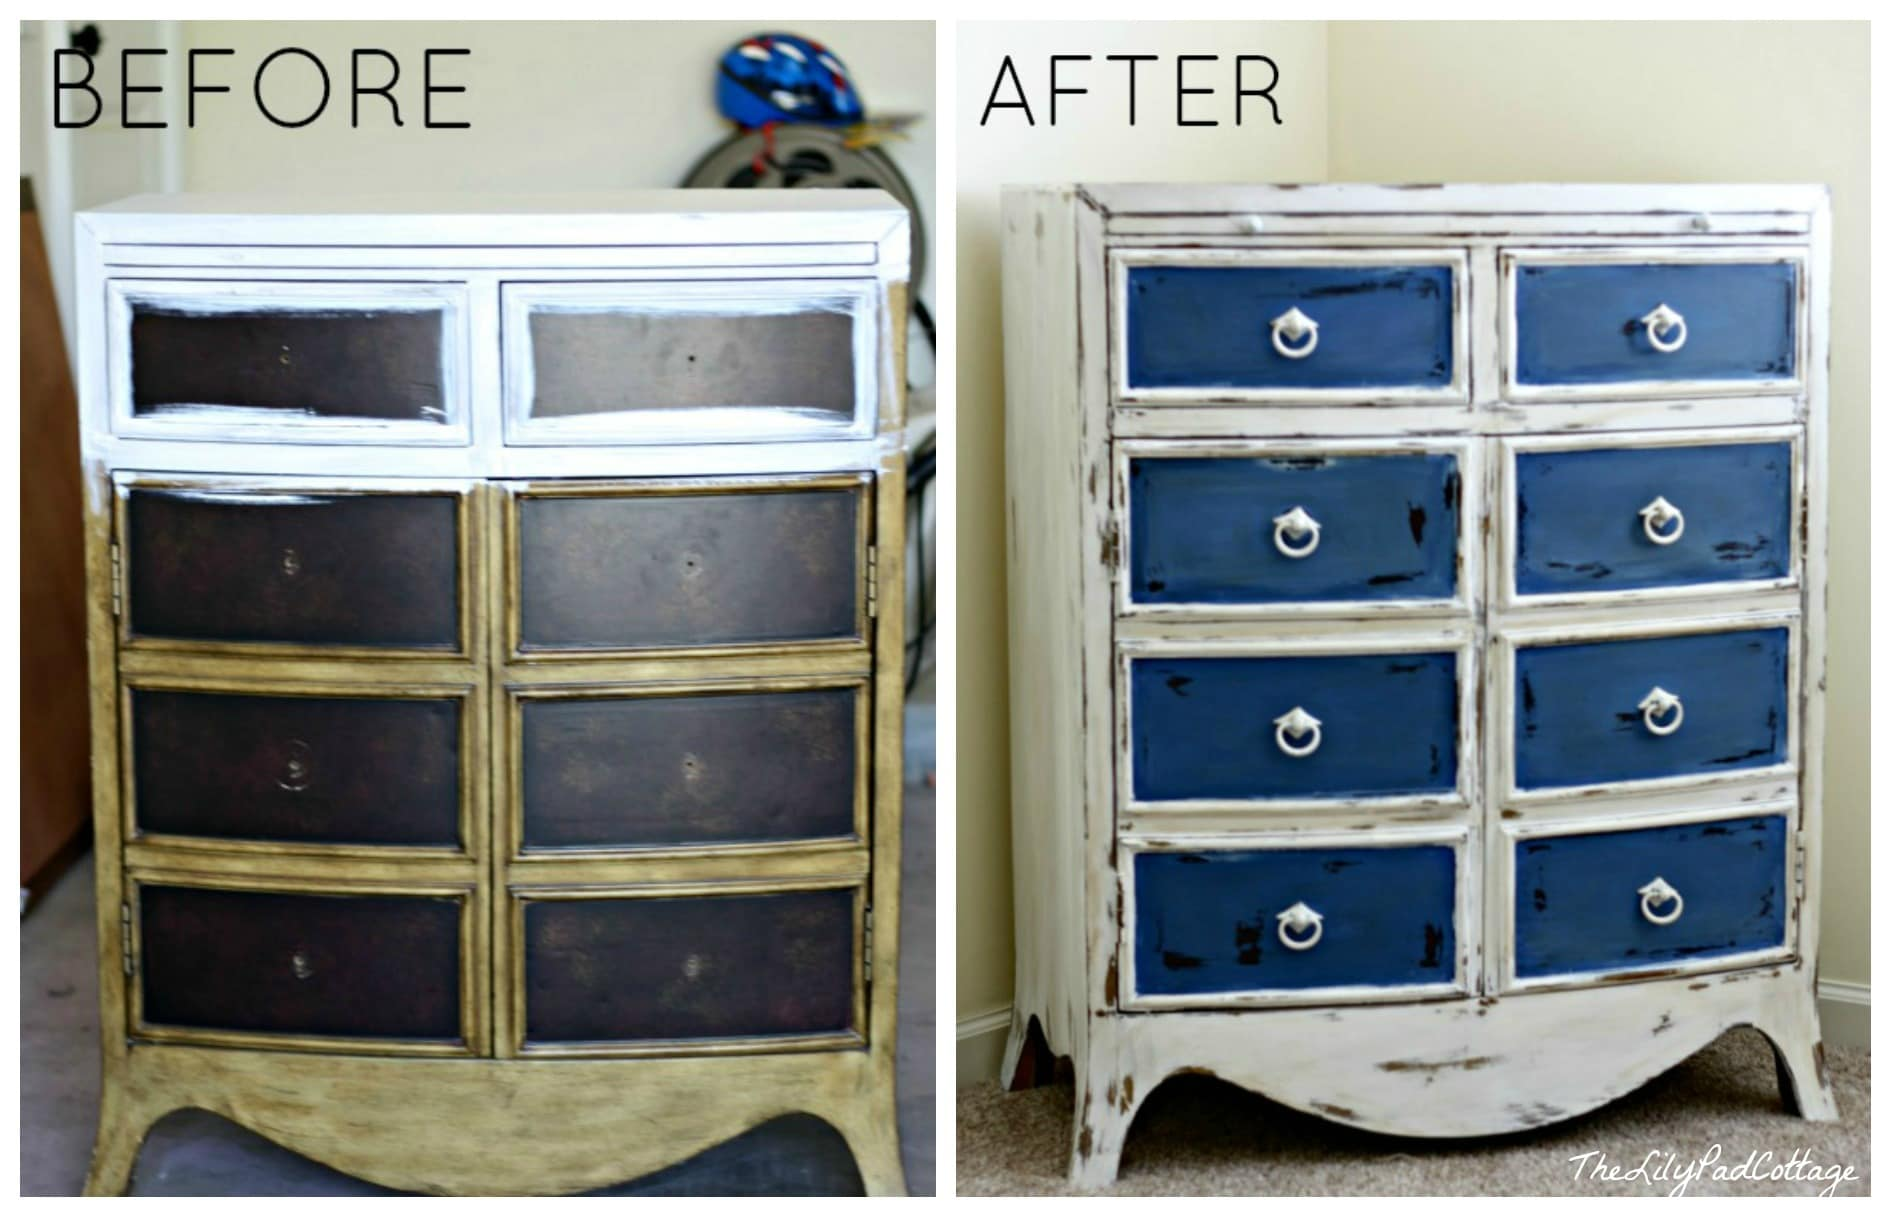 Ordinaire Furniture Redo Annie Sloan Chalk Paint   Www.thelilypadcottage.com